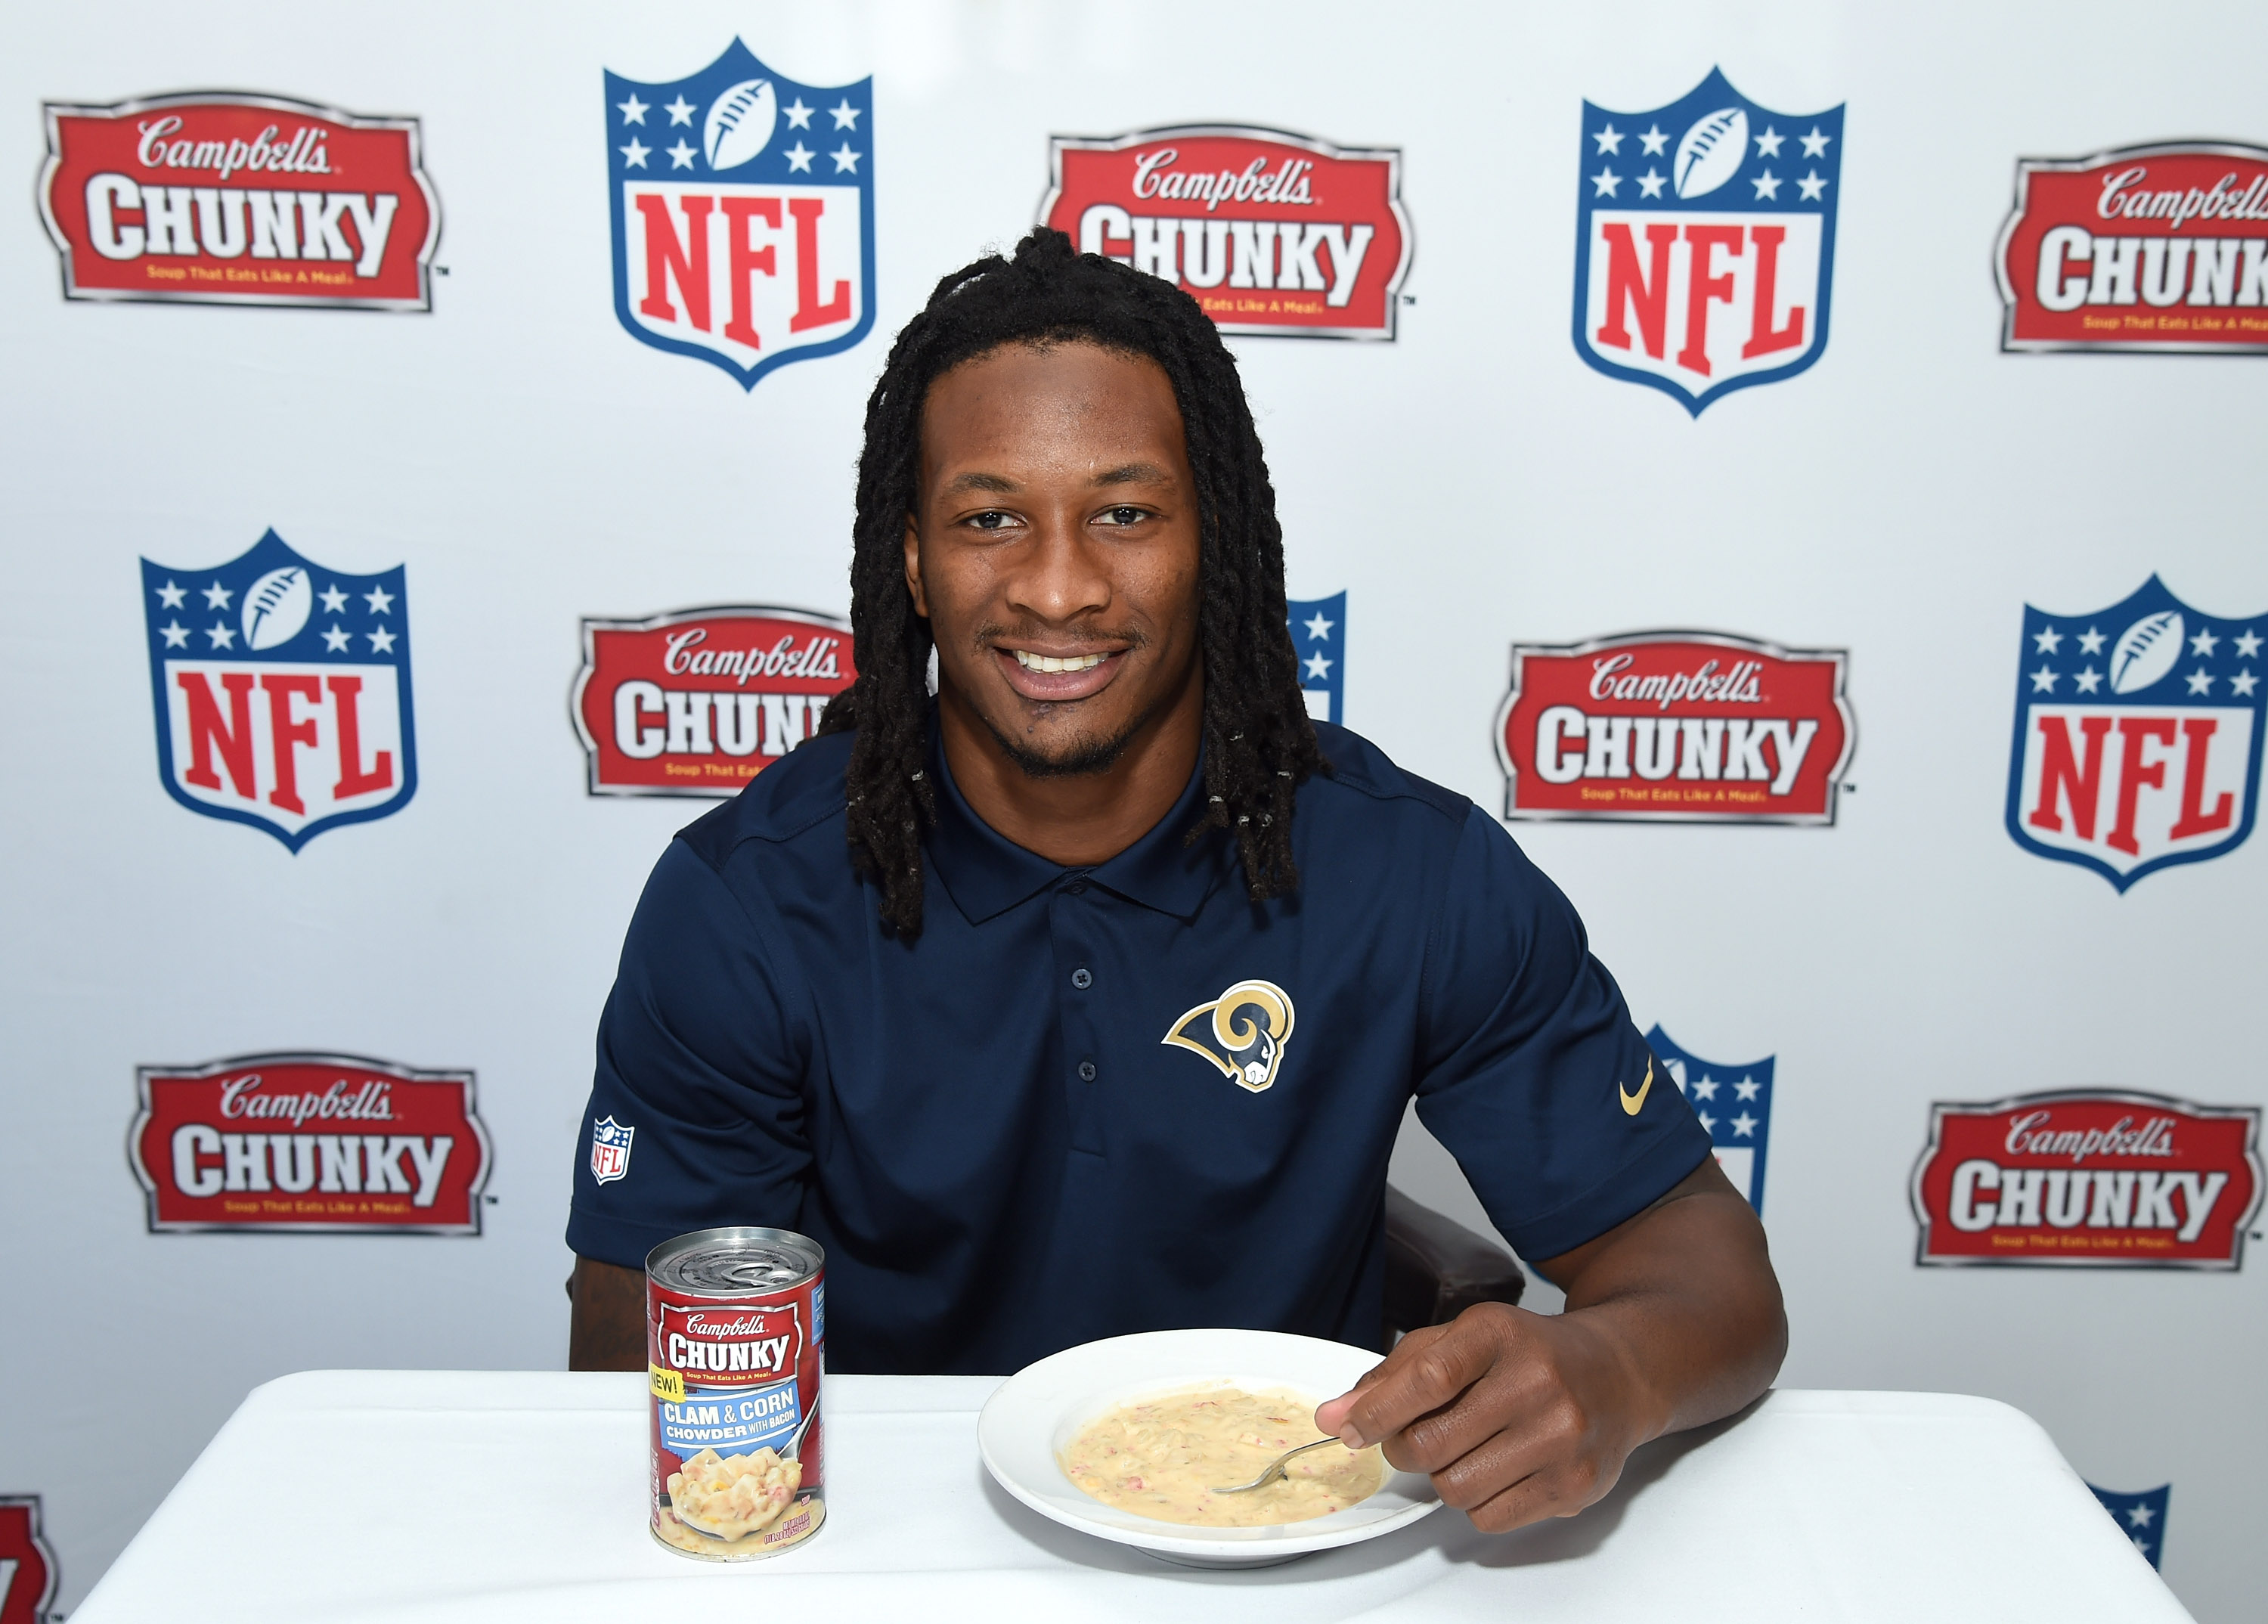 gurley dating Gurley and the girlfriend, melissa butler, made it down two flights of stairs after he was shot, but he collapsed on the fifth-floor landing and lost consciousness, according to reports gurley was taken to a nearby hospital, where he died.